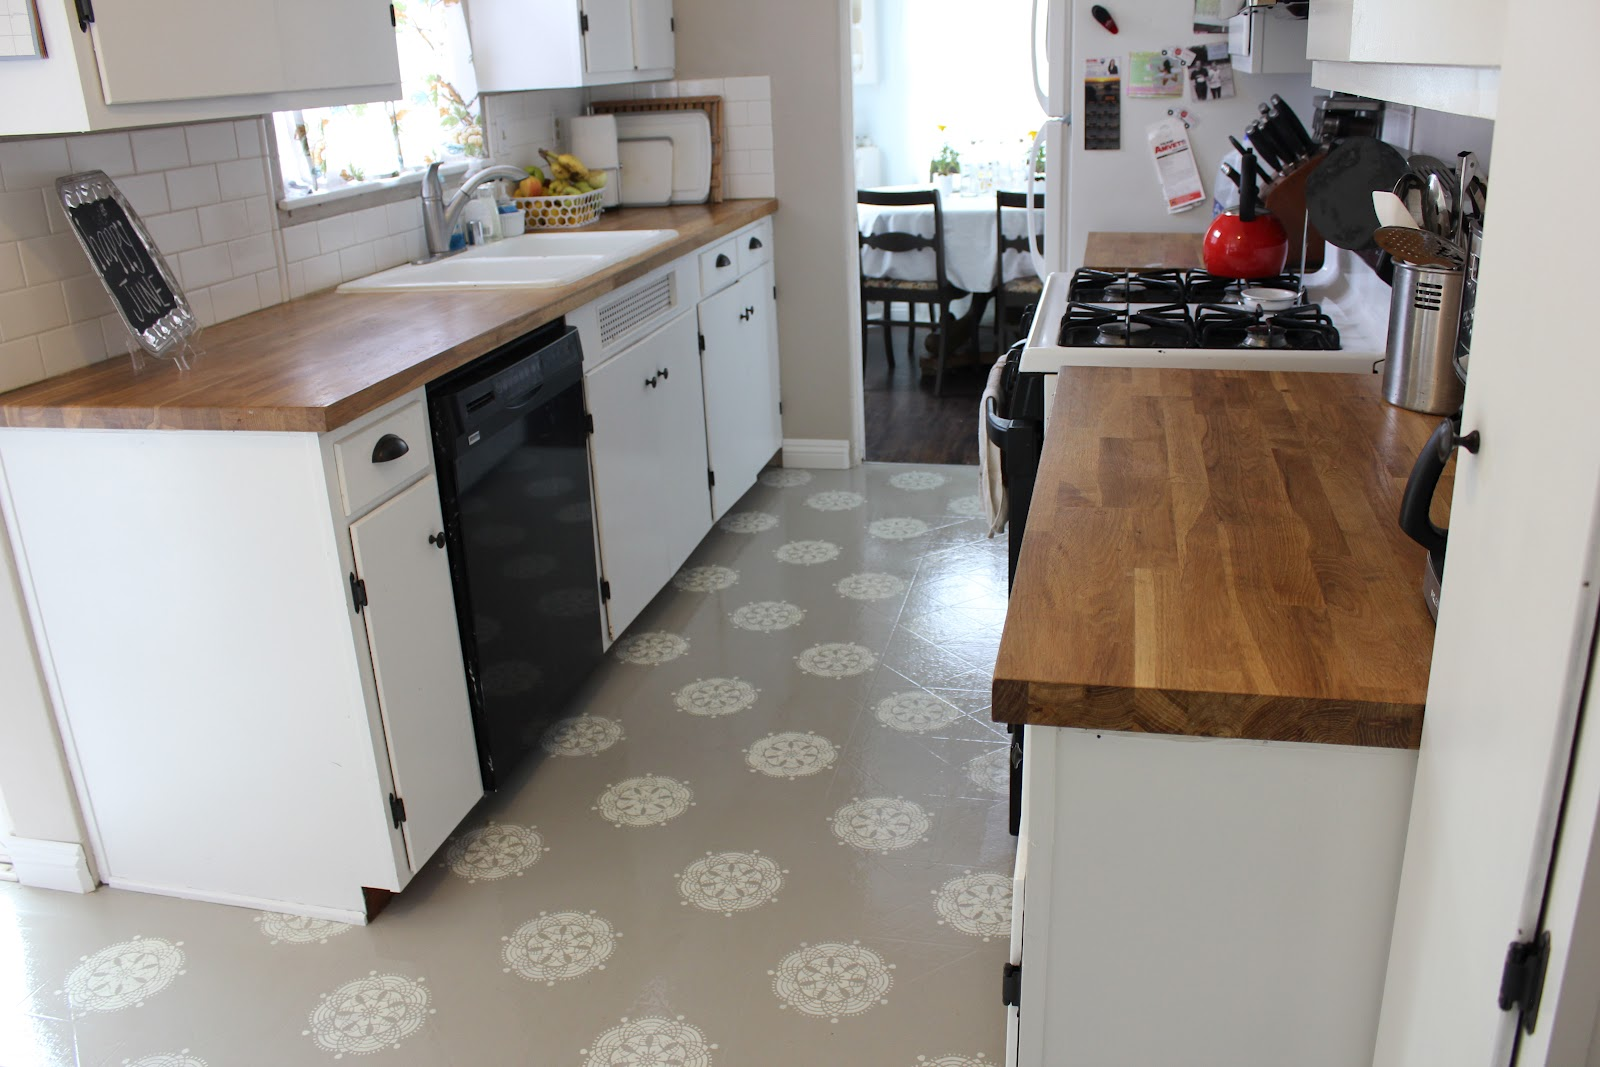 Kitchen Floorings A Warm Conversation Work With What You Got Painted Kitchen Floors